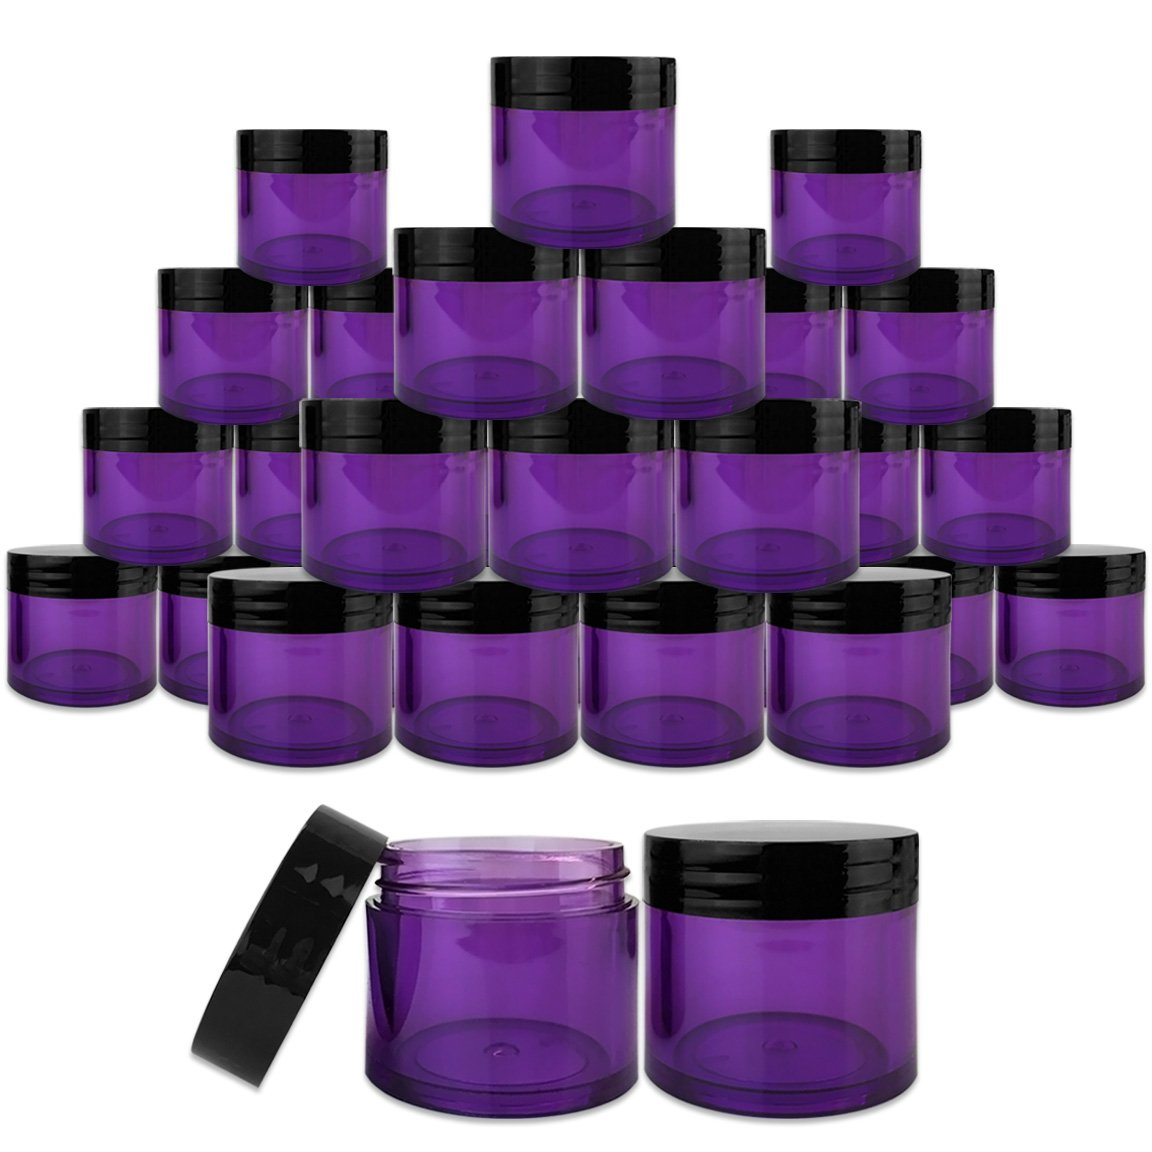 Beauticom 30 Pieces 30G 30ML 1 Oz Thick Wall Round PURPLE CLEAR Plastic Container Jars with Black Flat Top Lids – Leak-Proof Jar – BPA Free